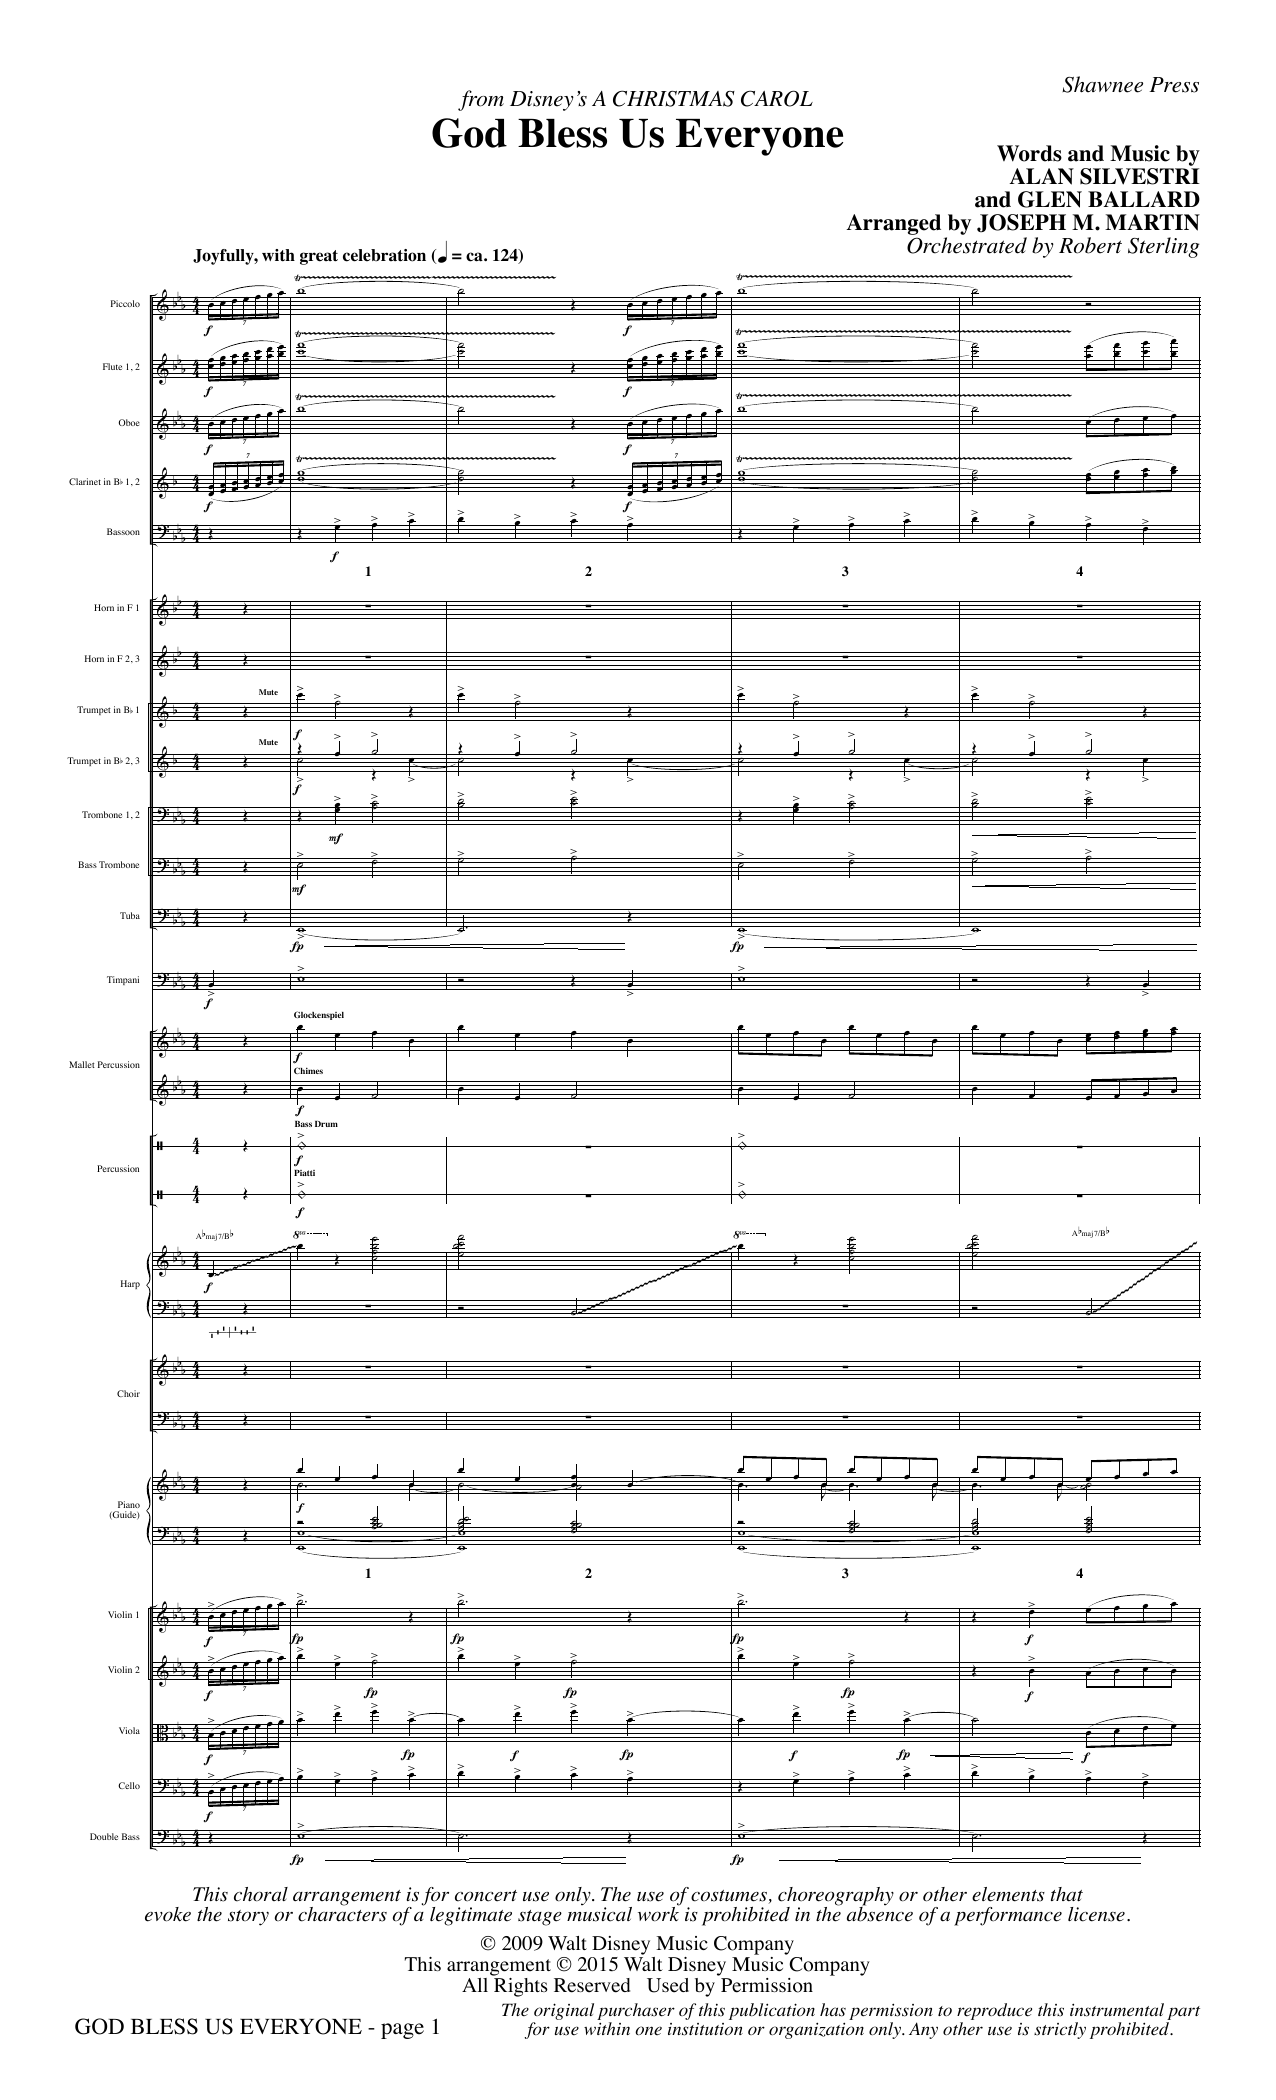 God Bless Us Everyone (from Disney's A Christmas Carol) (COMPLETE) sheet music for orchestra/band by Joseph M. Martin, Alan Silvestri, Andrea Bocelli and Glen Ballard. Score Image Preview.